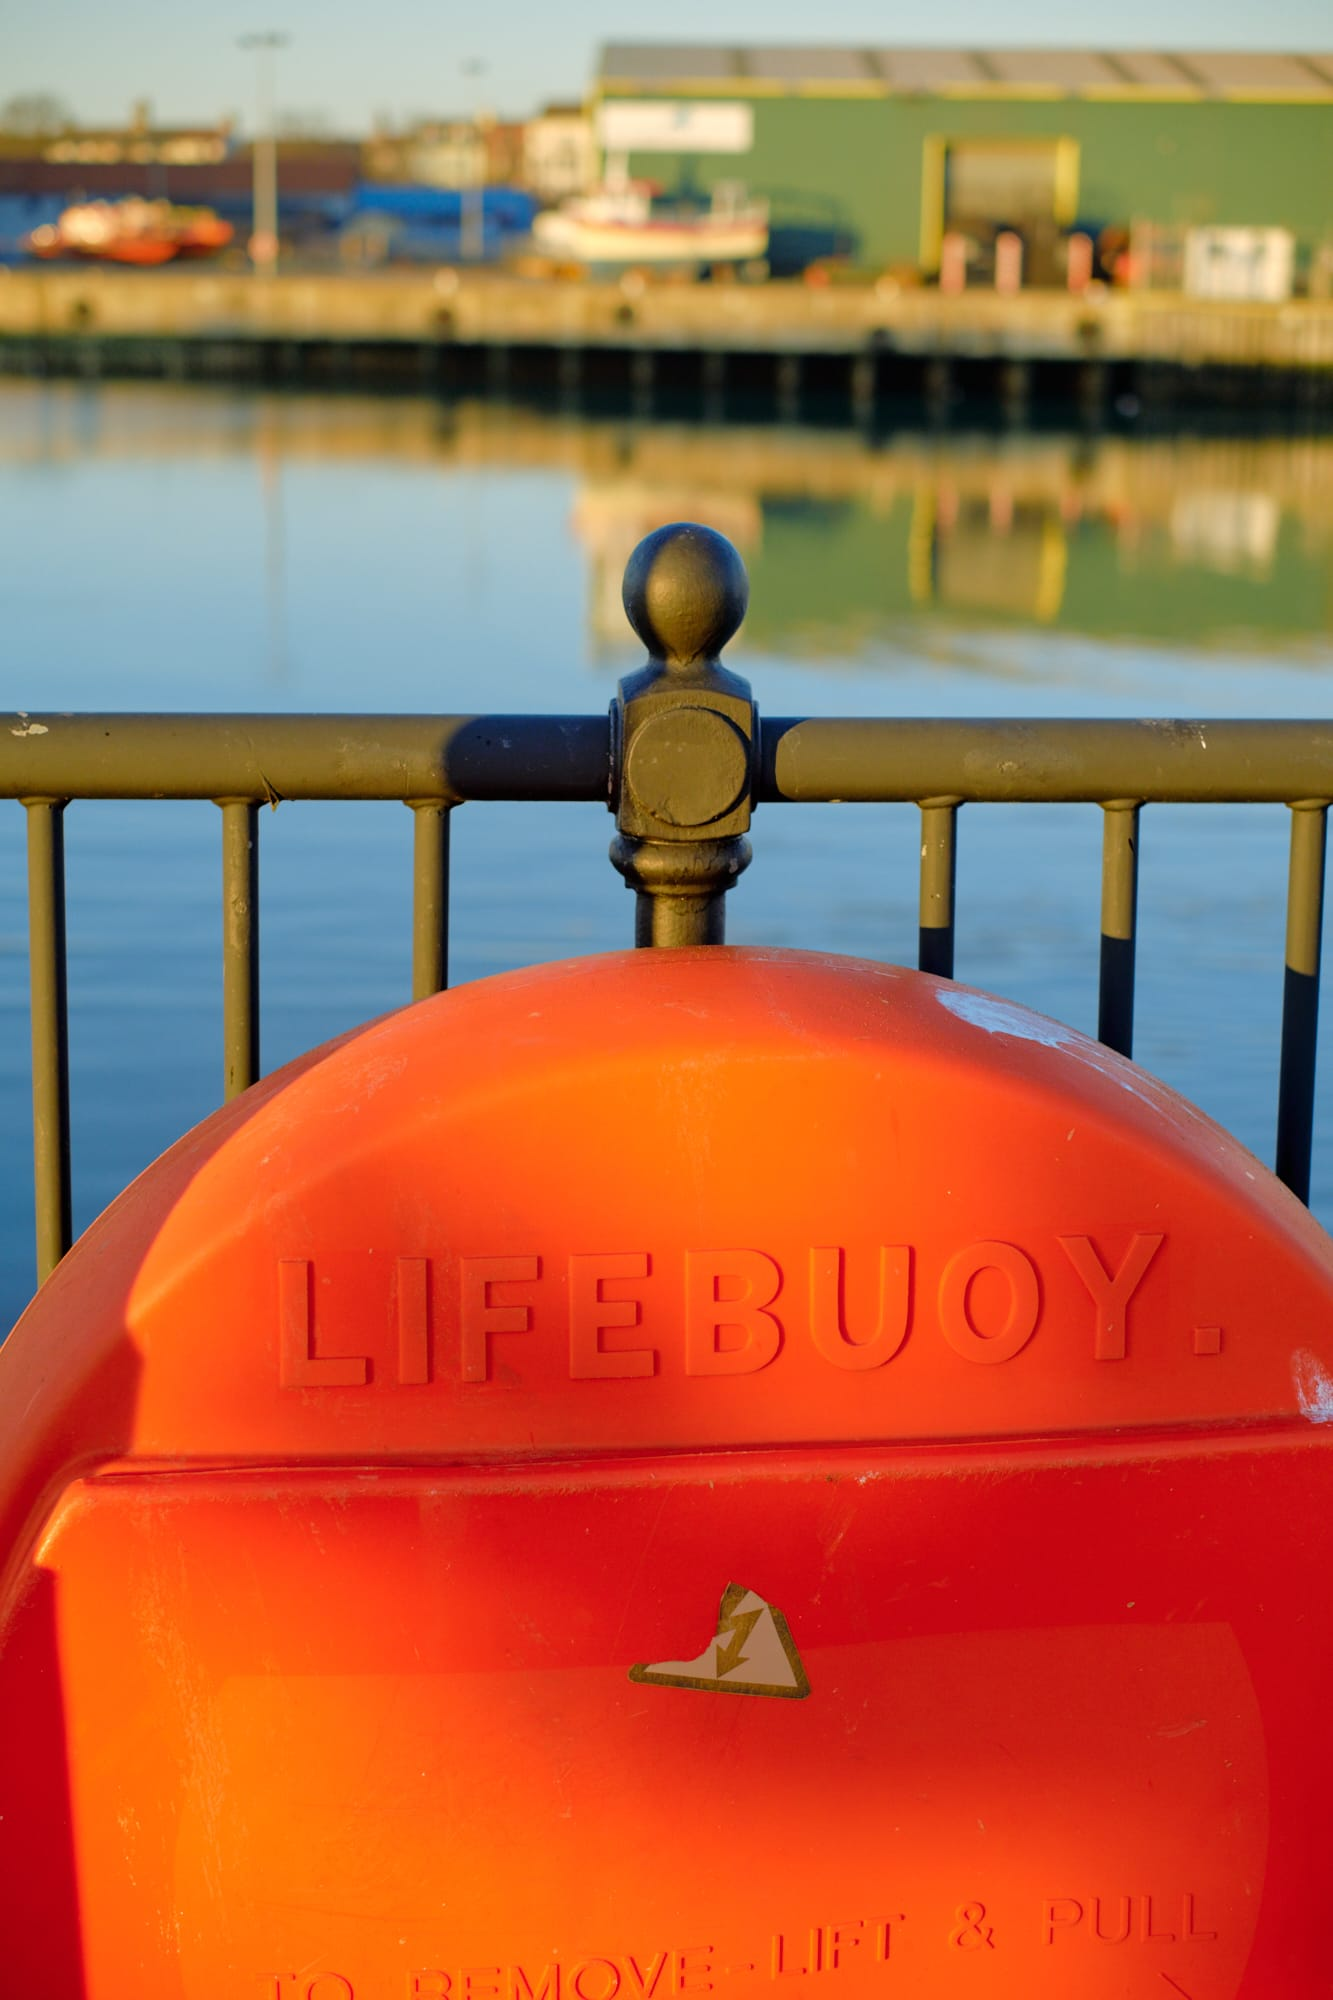 life buoy near Asda carpark